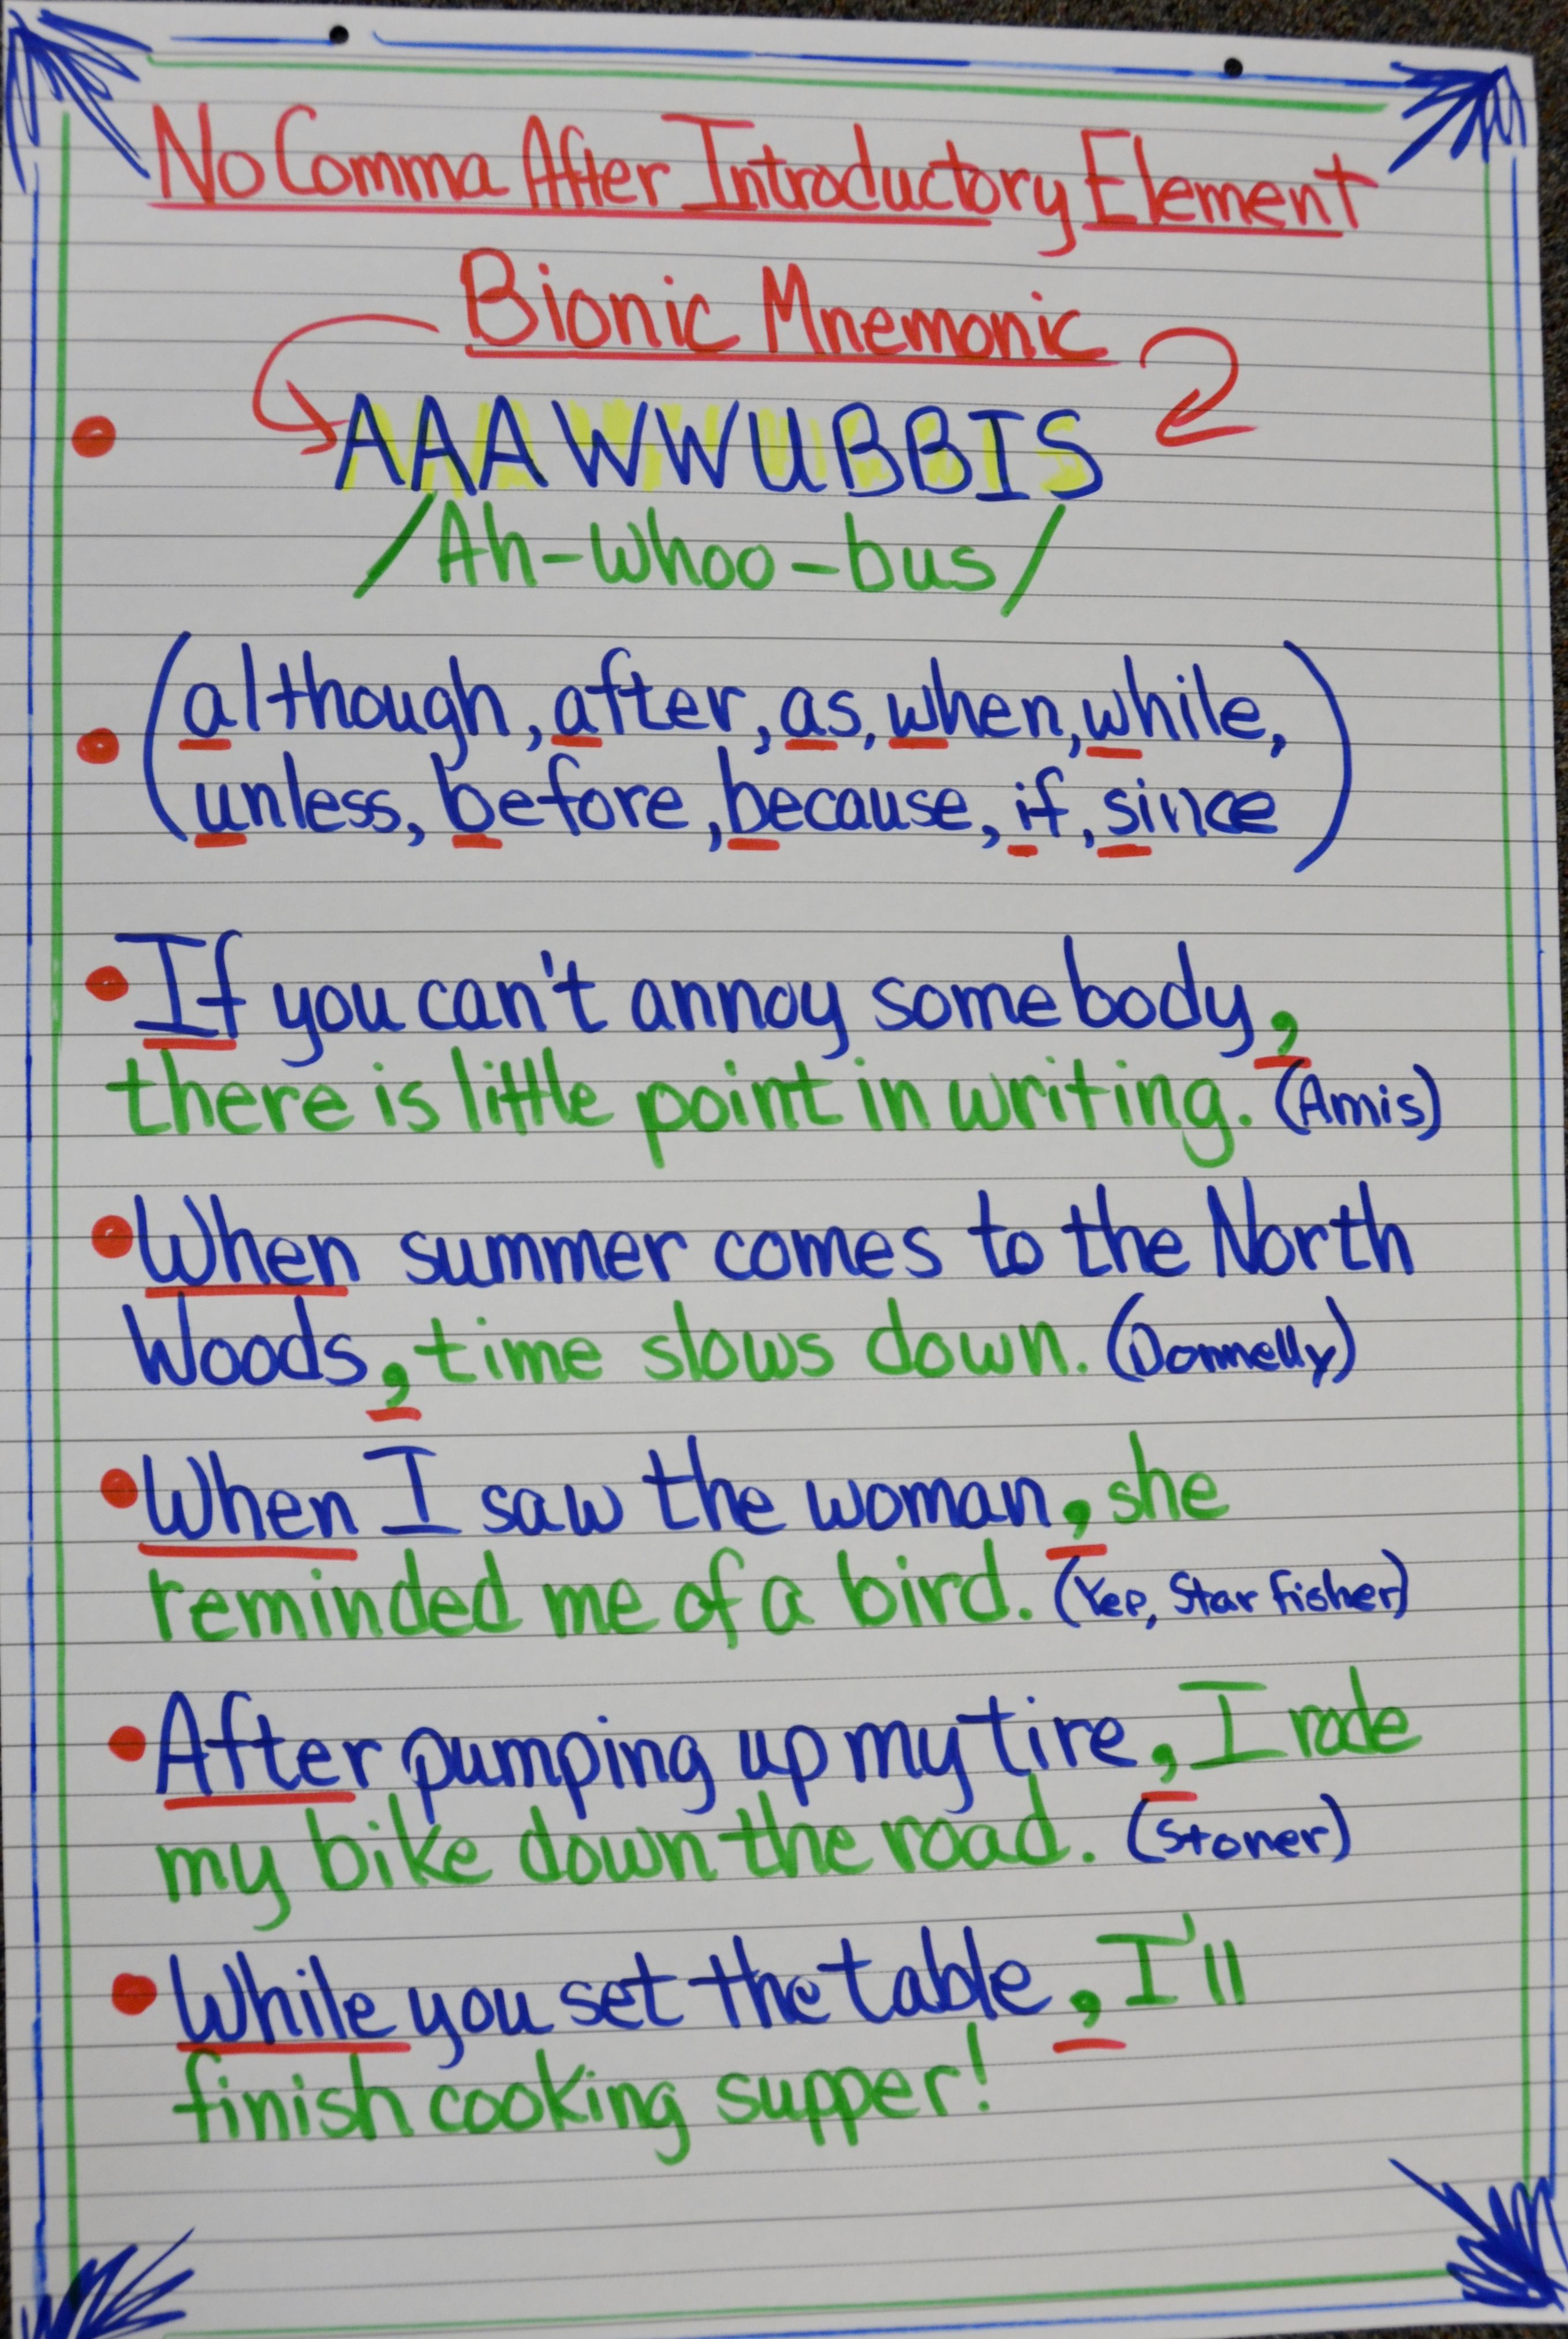 Aaawwubbis Great For Prepositional Phrases And Varied Sentences